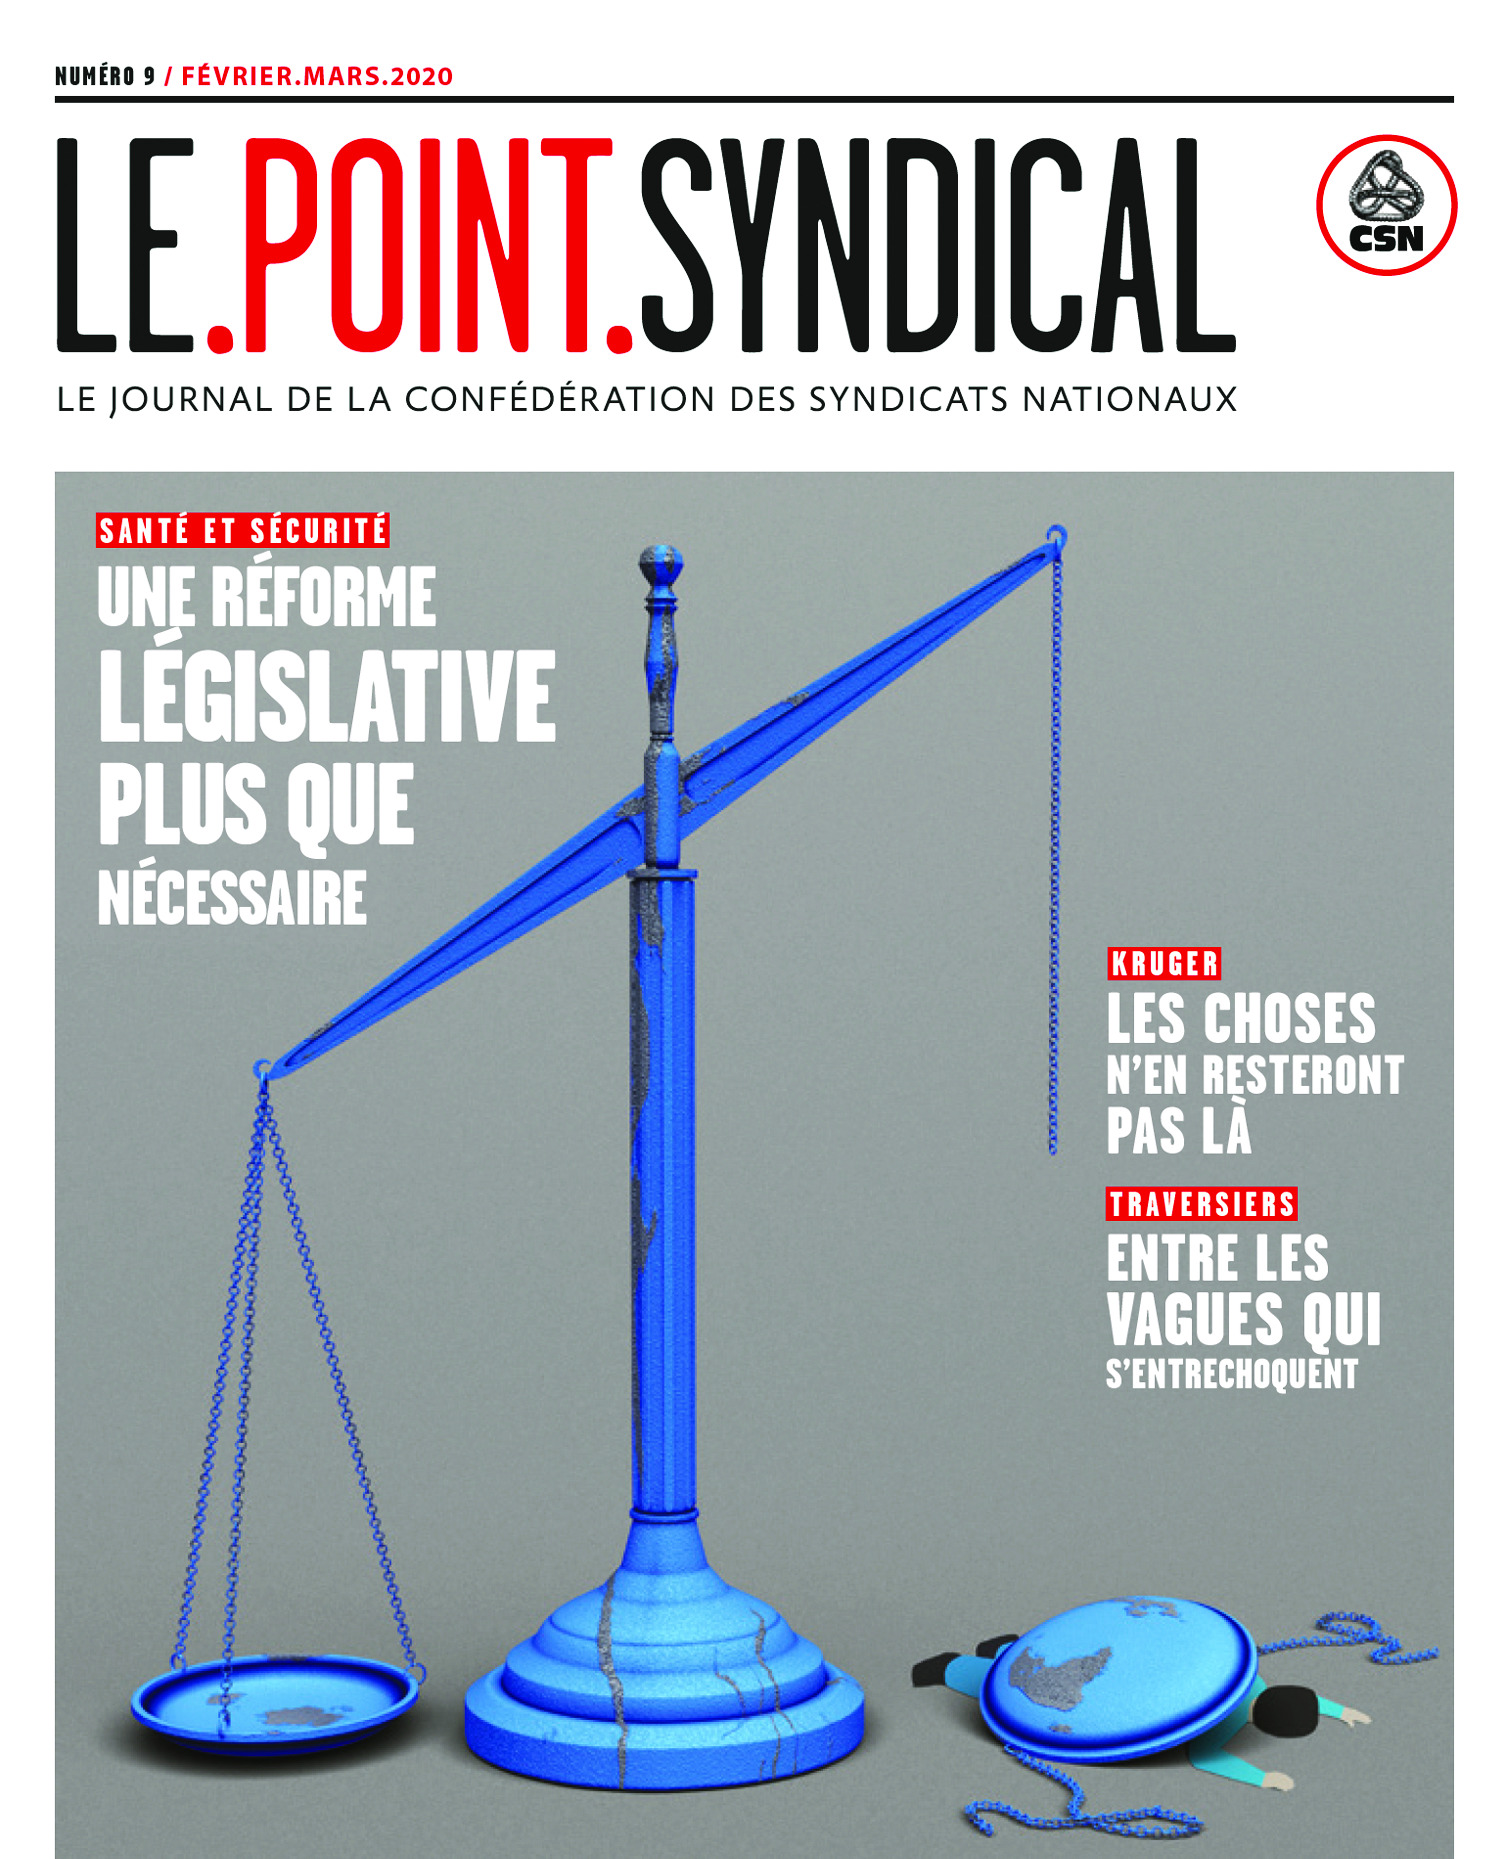 Le Point Syndical Numéro 9